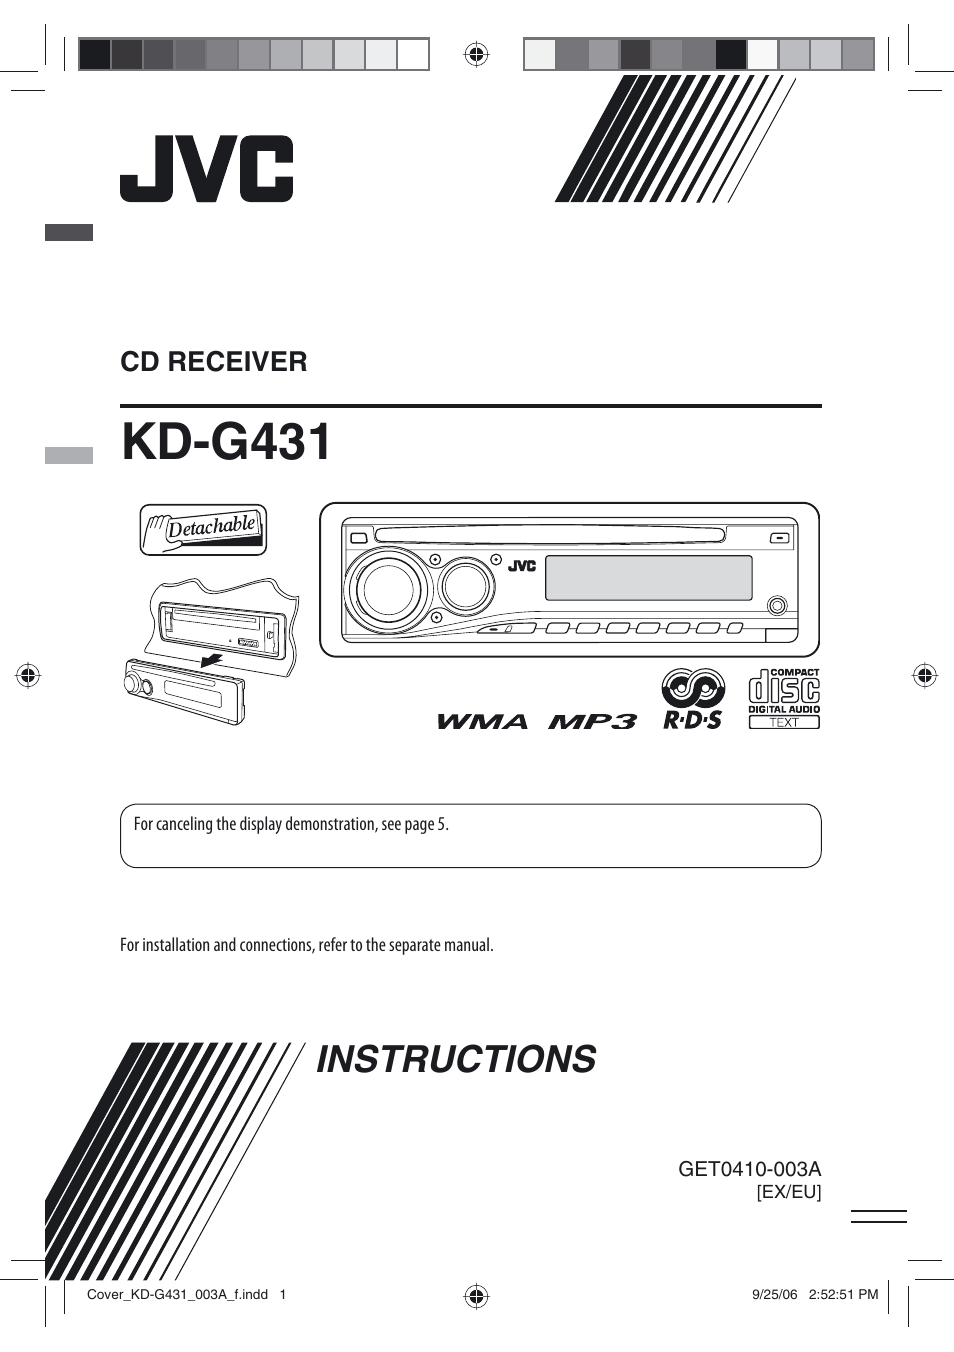 jvc kd g431 page1 jvc kd g431 user manual 28 pages jvc kd g340 wiring diagram at readyjetset.co